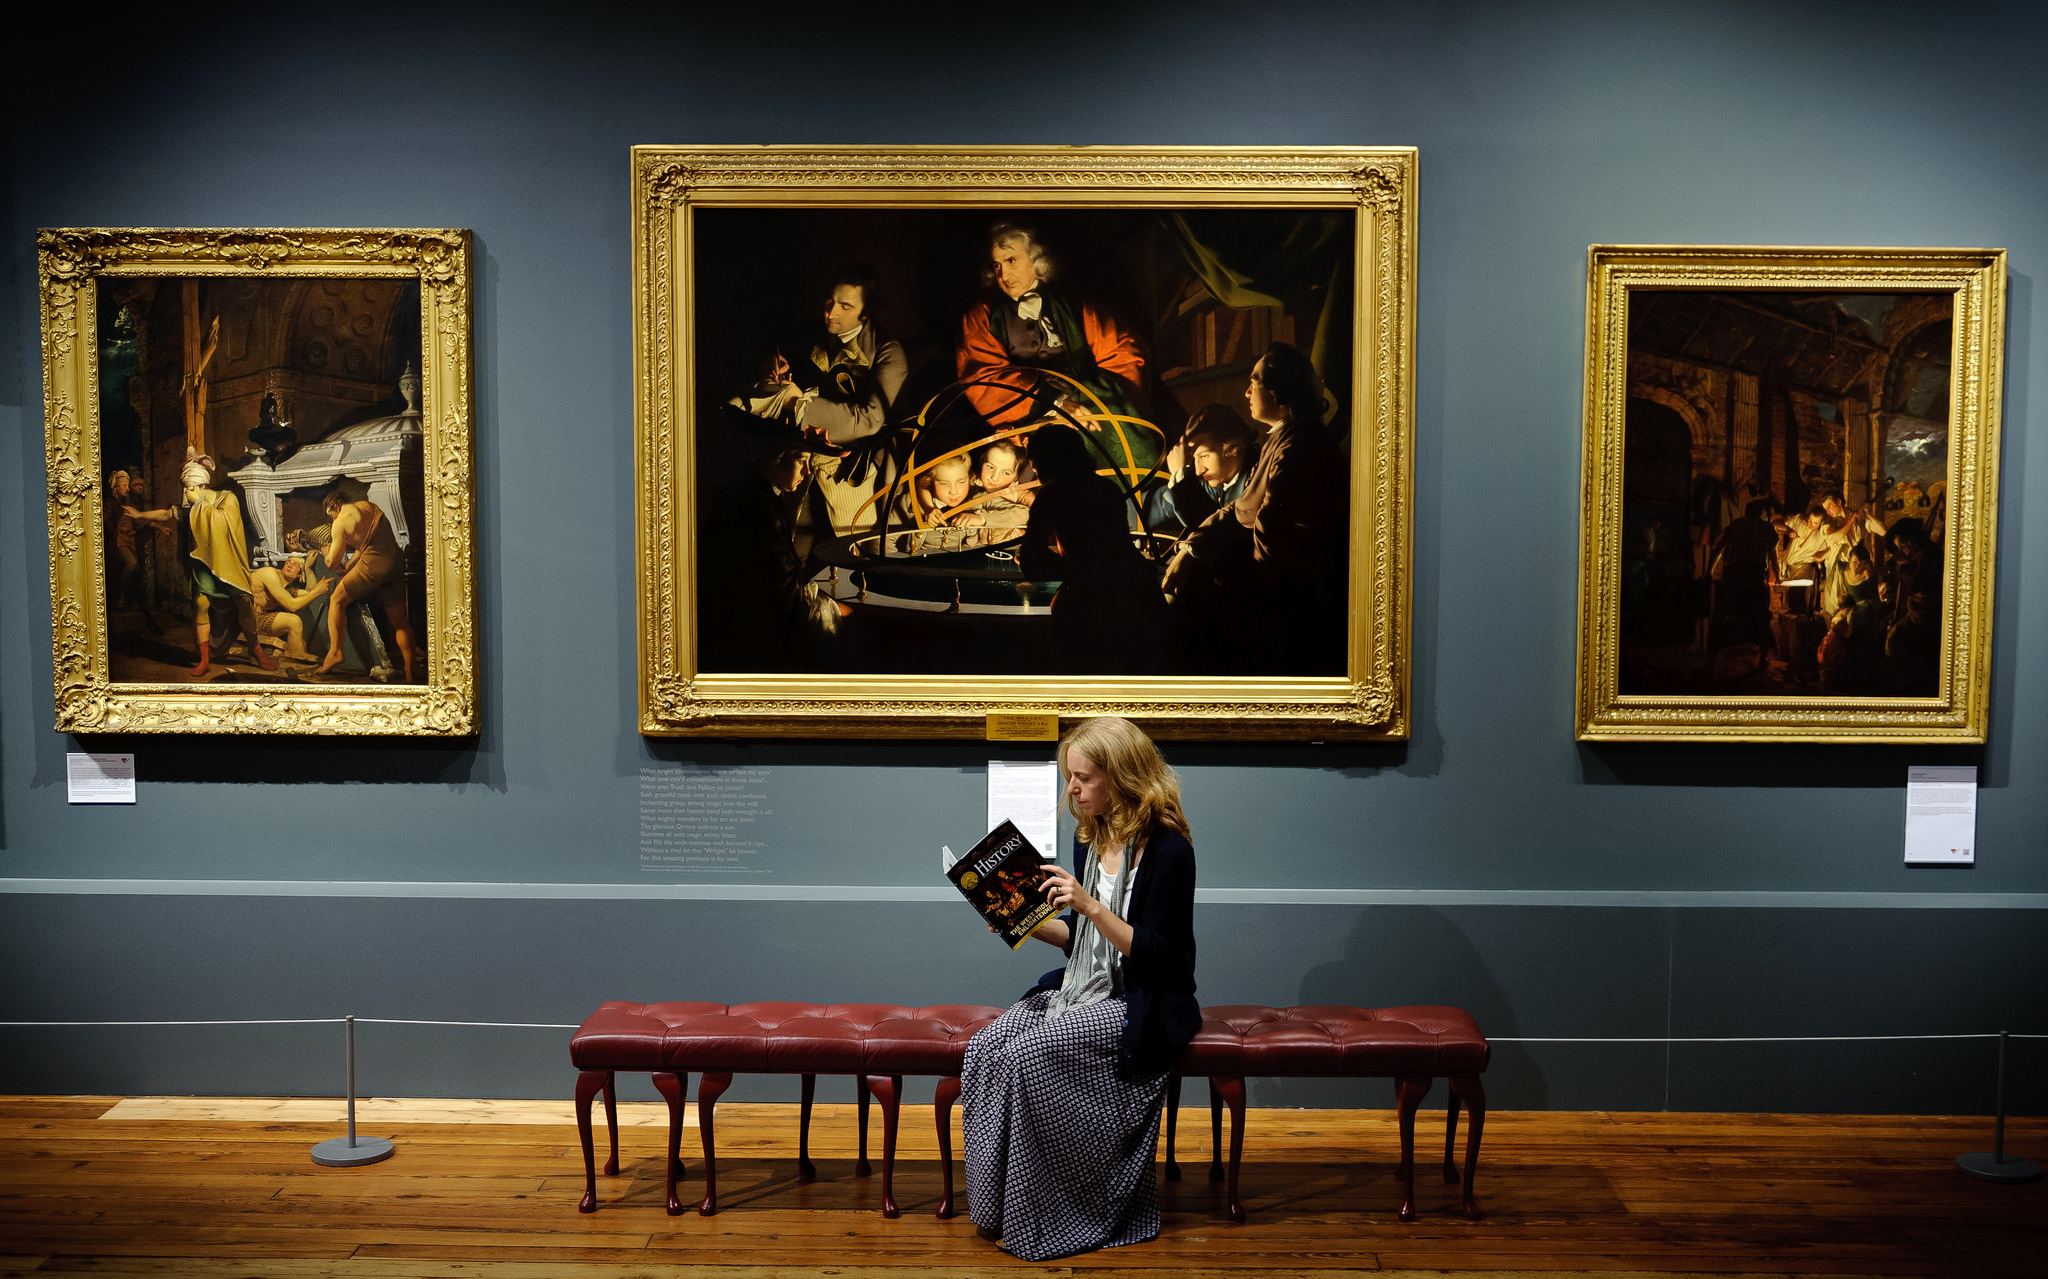 A lady reads a guidebook in front of three elegant paintings in a gallery space.